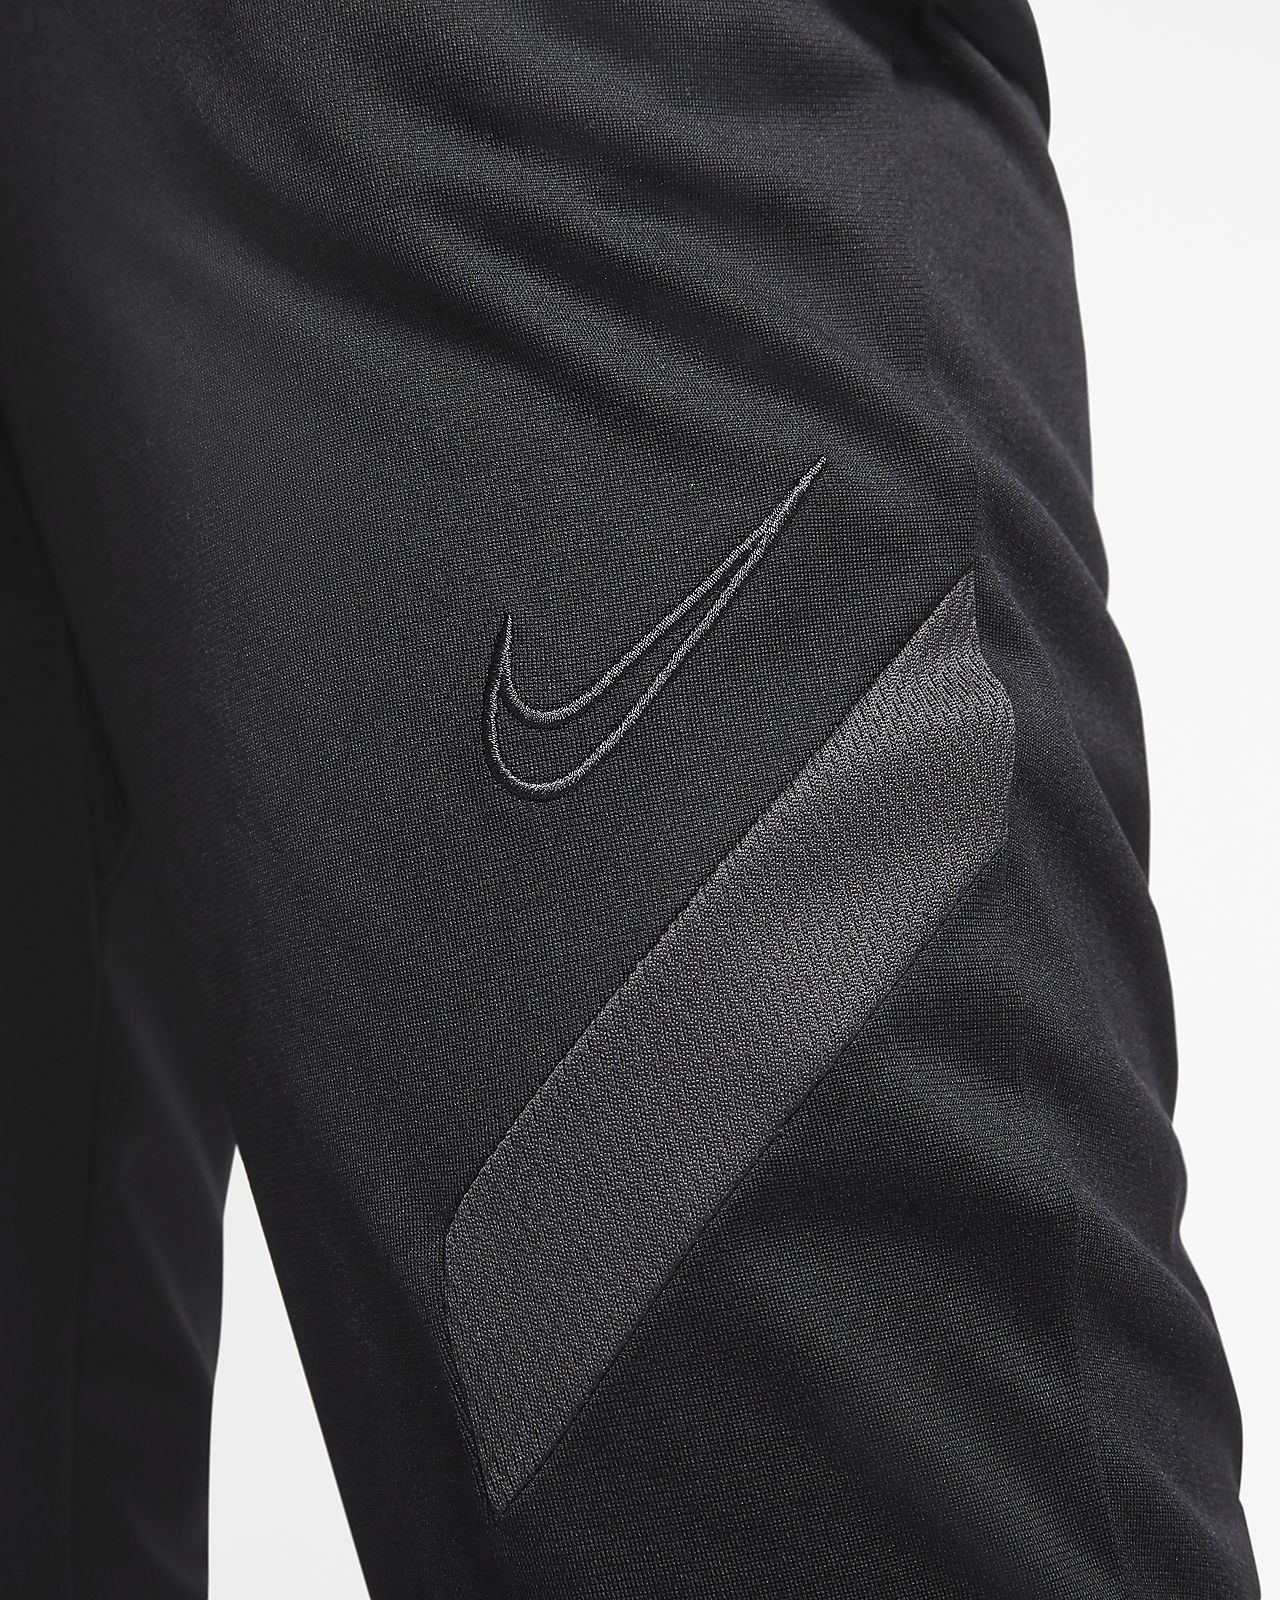 Nike Men's Dry Academy18 Football Winter Jacket (Men's)